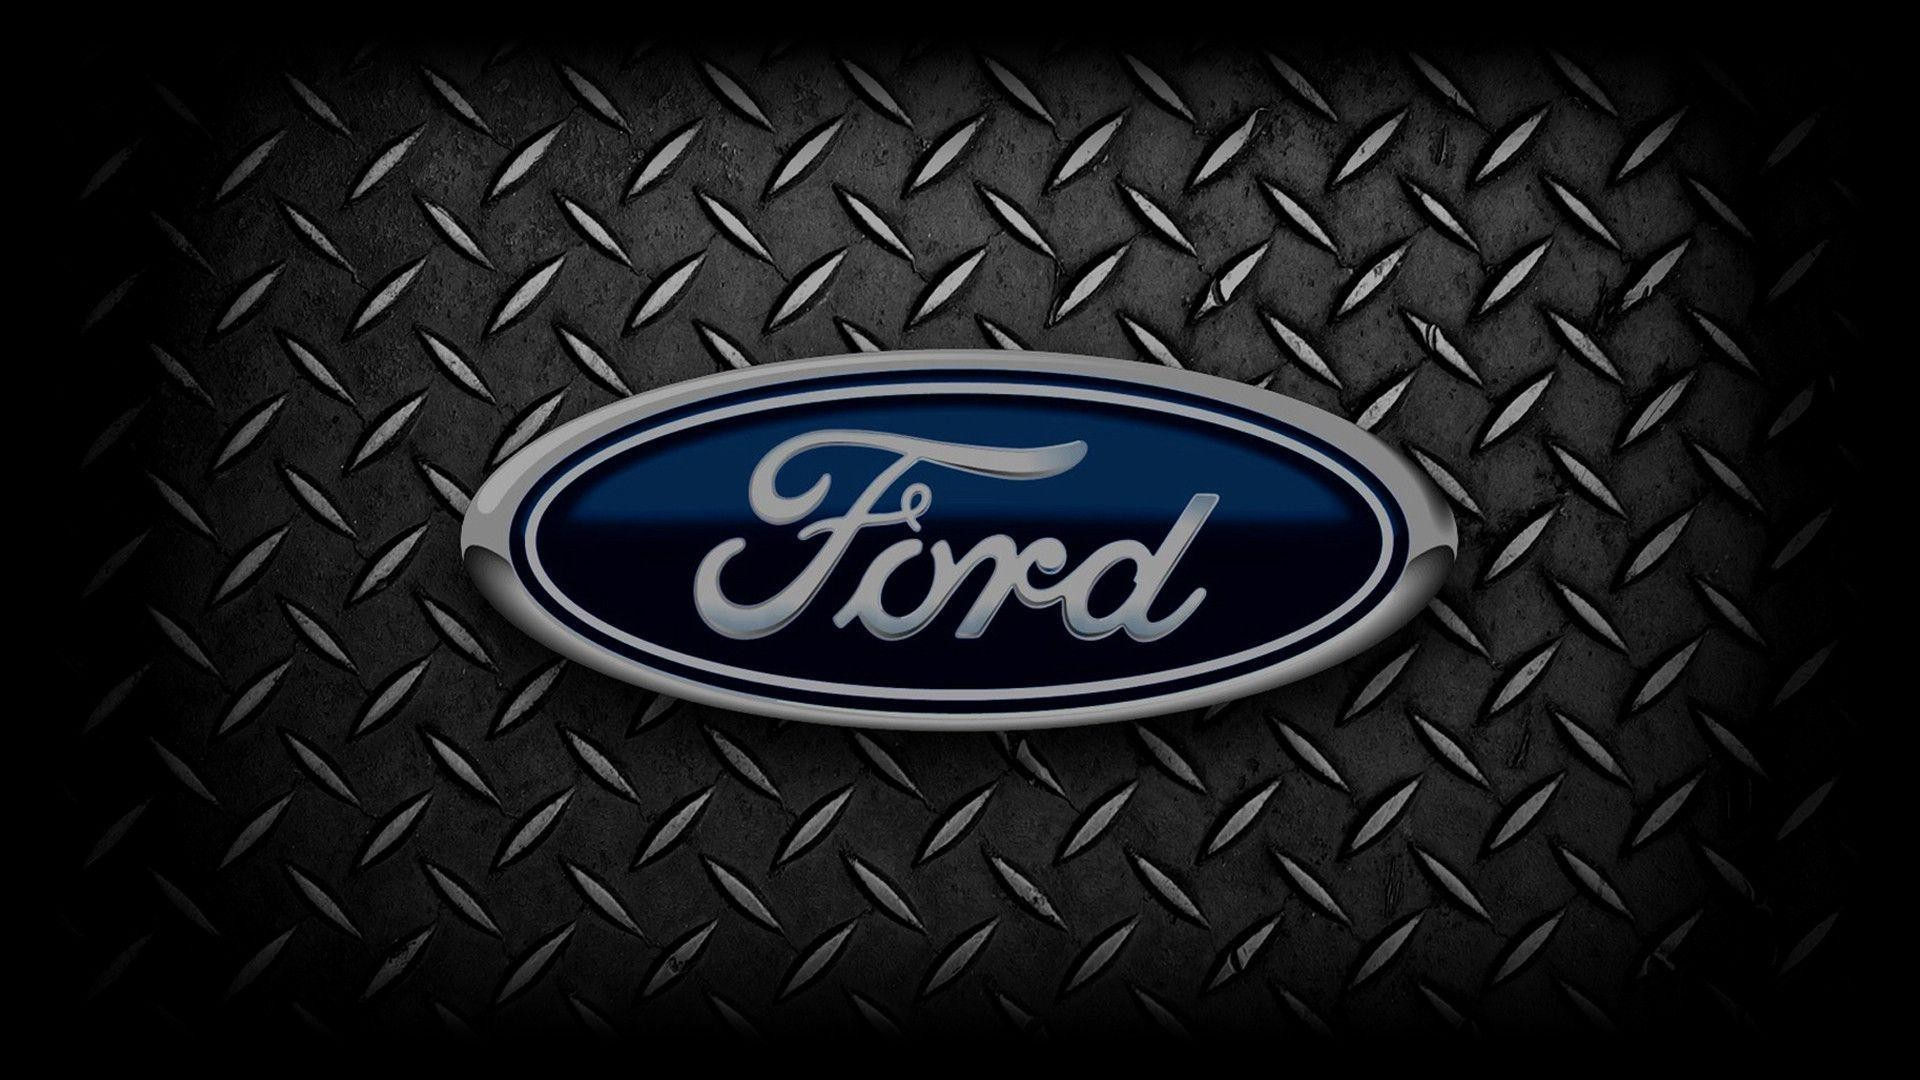 1920x1080 Ford Wallpaper backgrounds In HD for Free Download